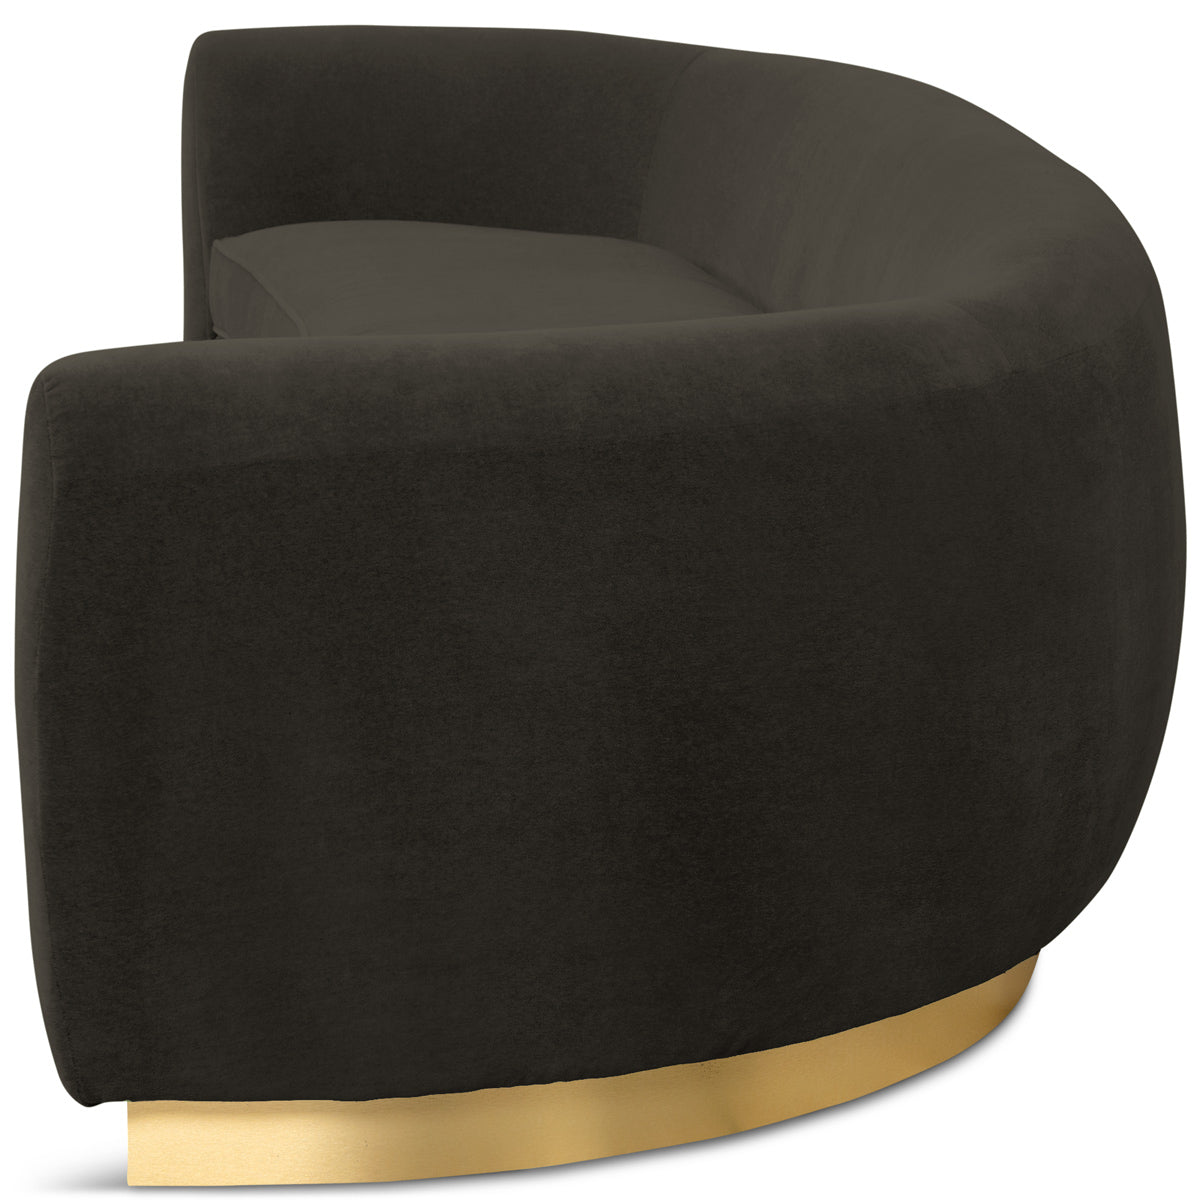 Miraculous Chubby Sofa In Mohair Modshop Gmtry Best Dining Table And Chair Ideas Images Gmtryco